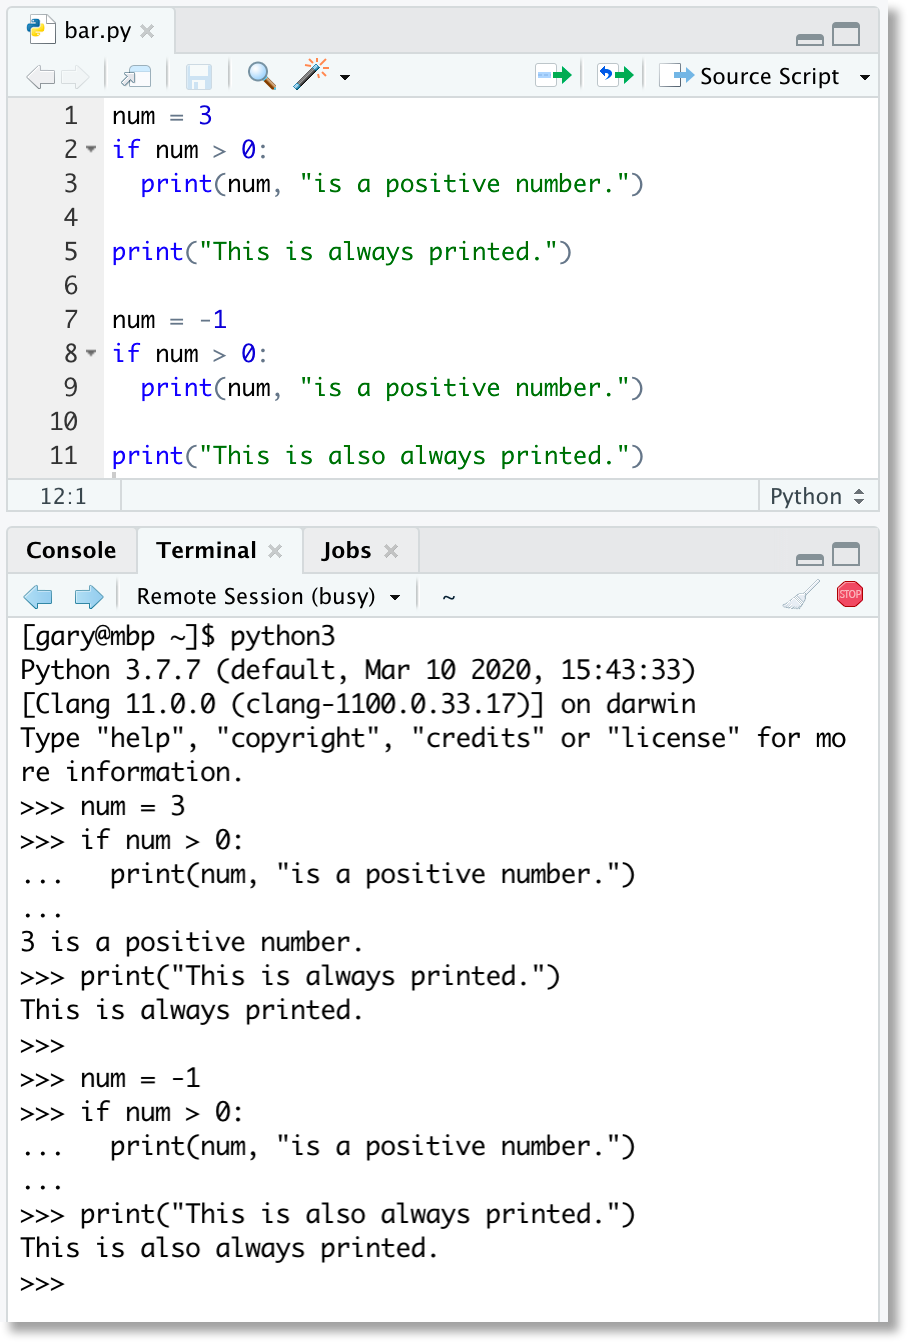 screenshot of a simple Python repl example